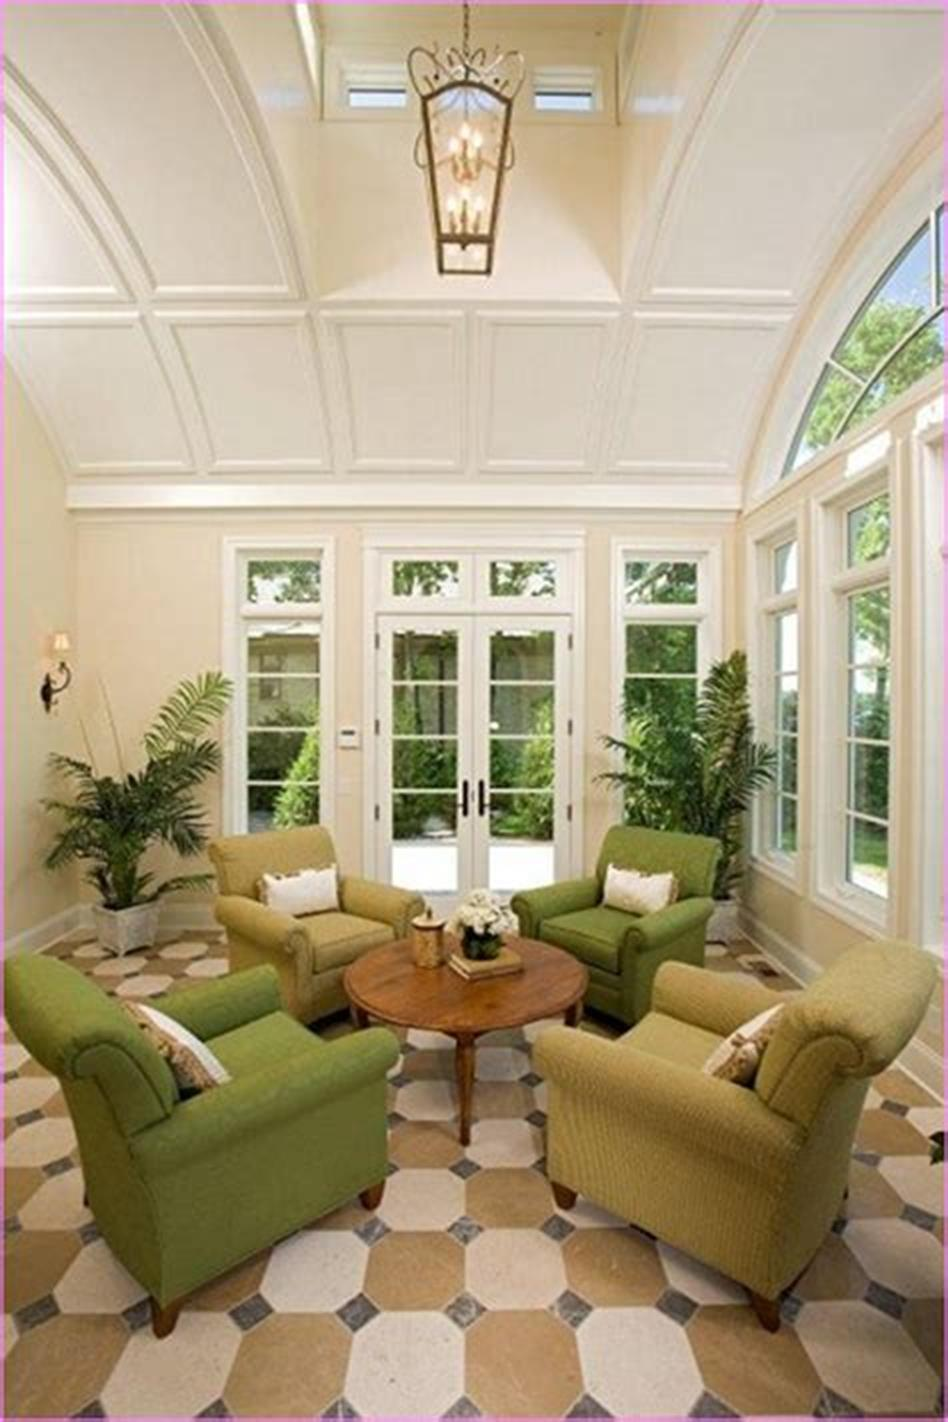 50 Most Popular Affordable Sunroom Design Ideas on a Budget 26